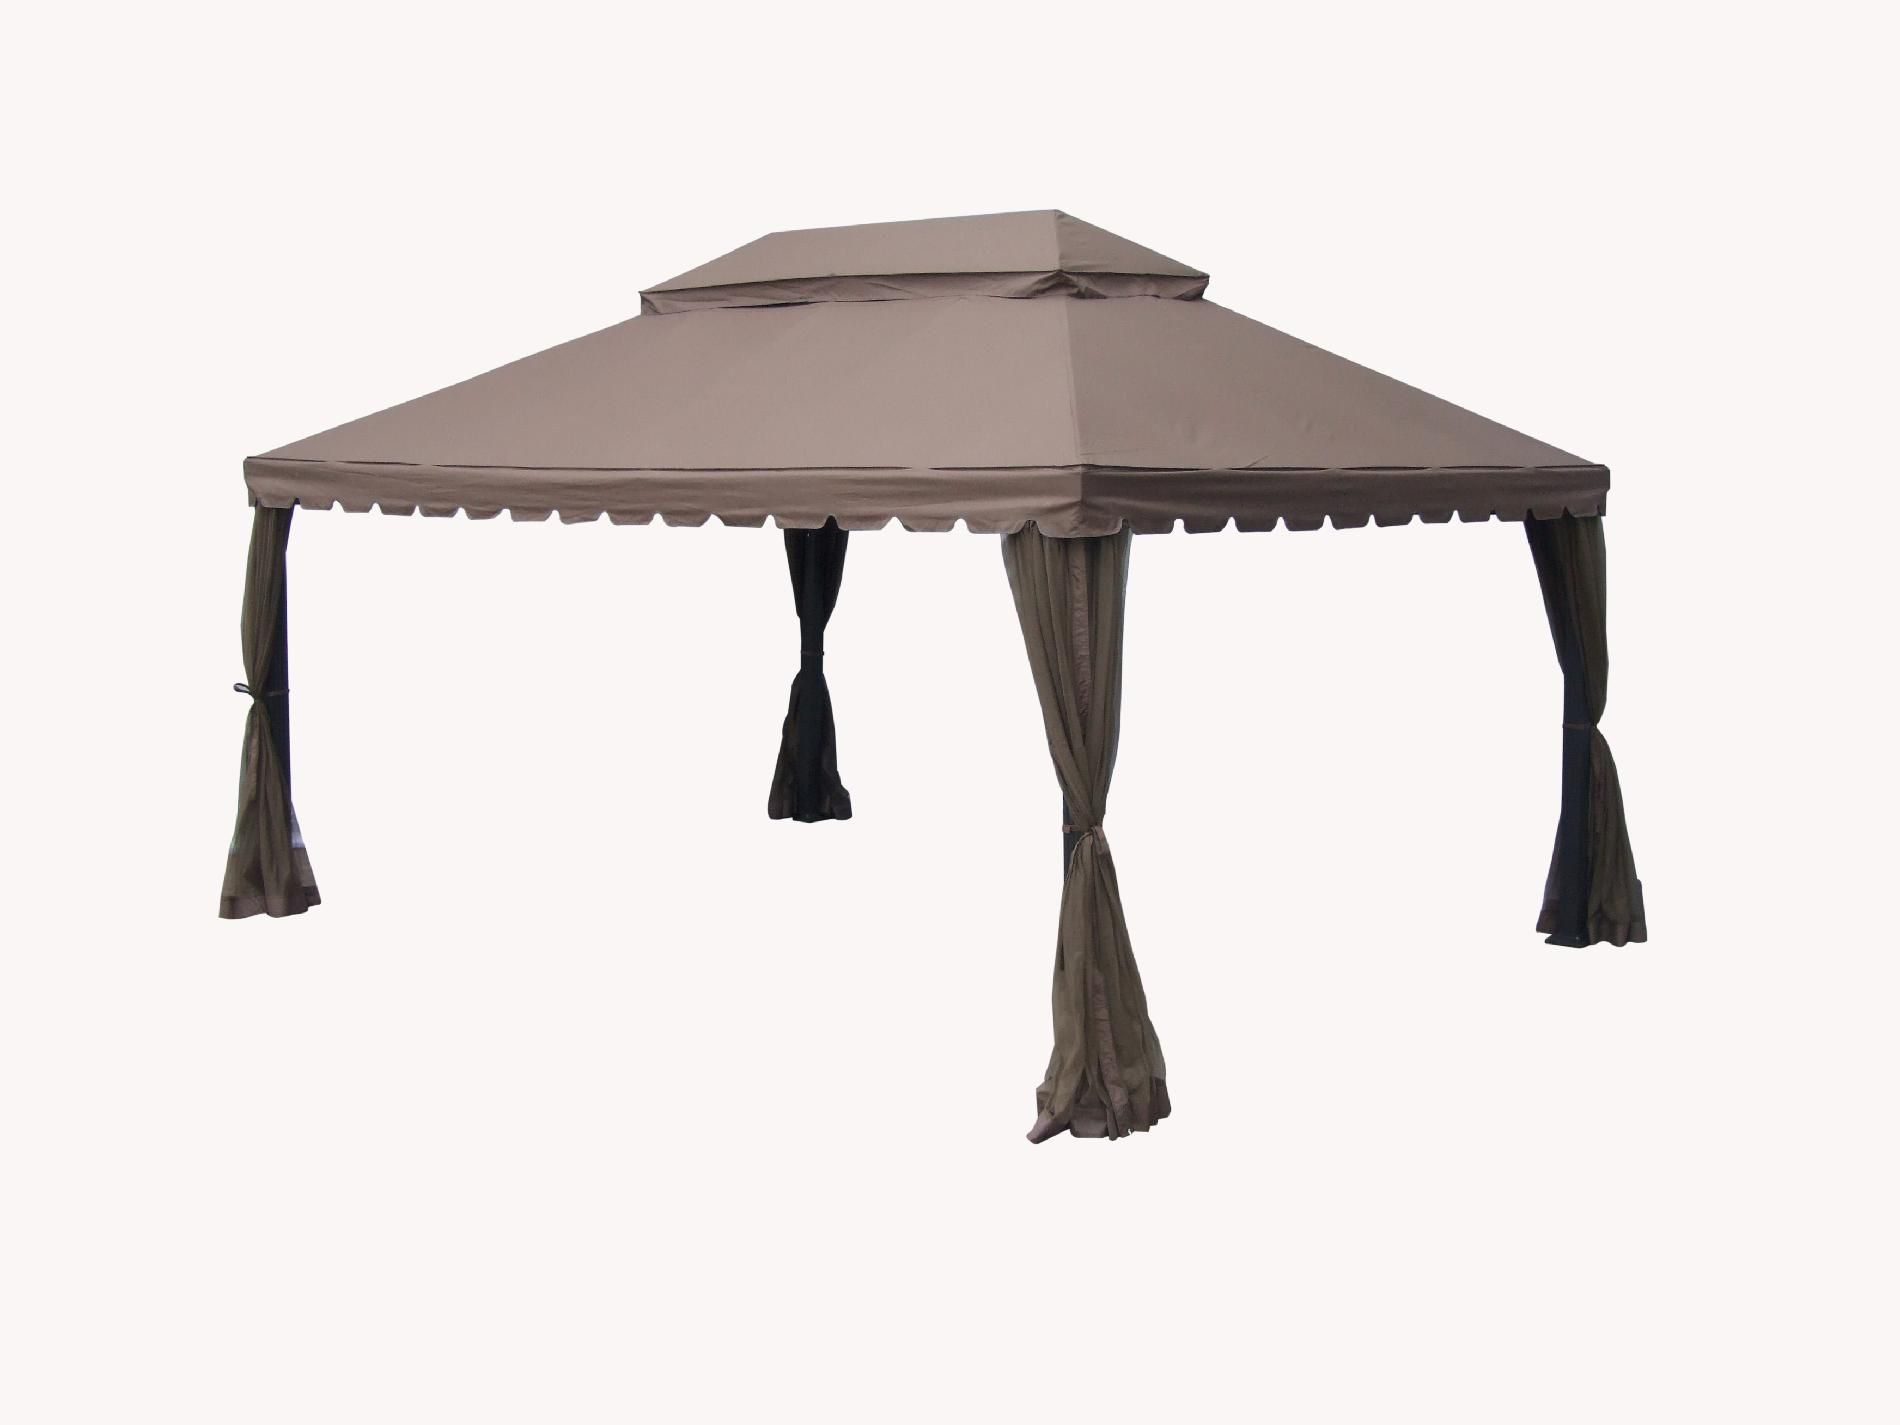 Grand Resort 12 Ft. x 16 Ft. Banquet Gazebo*